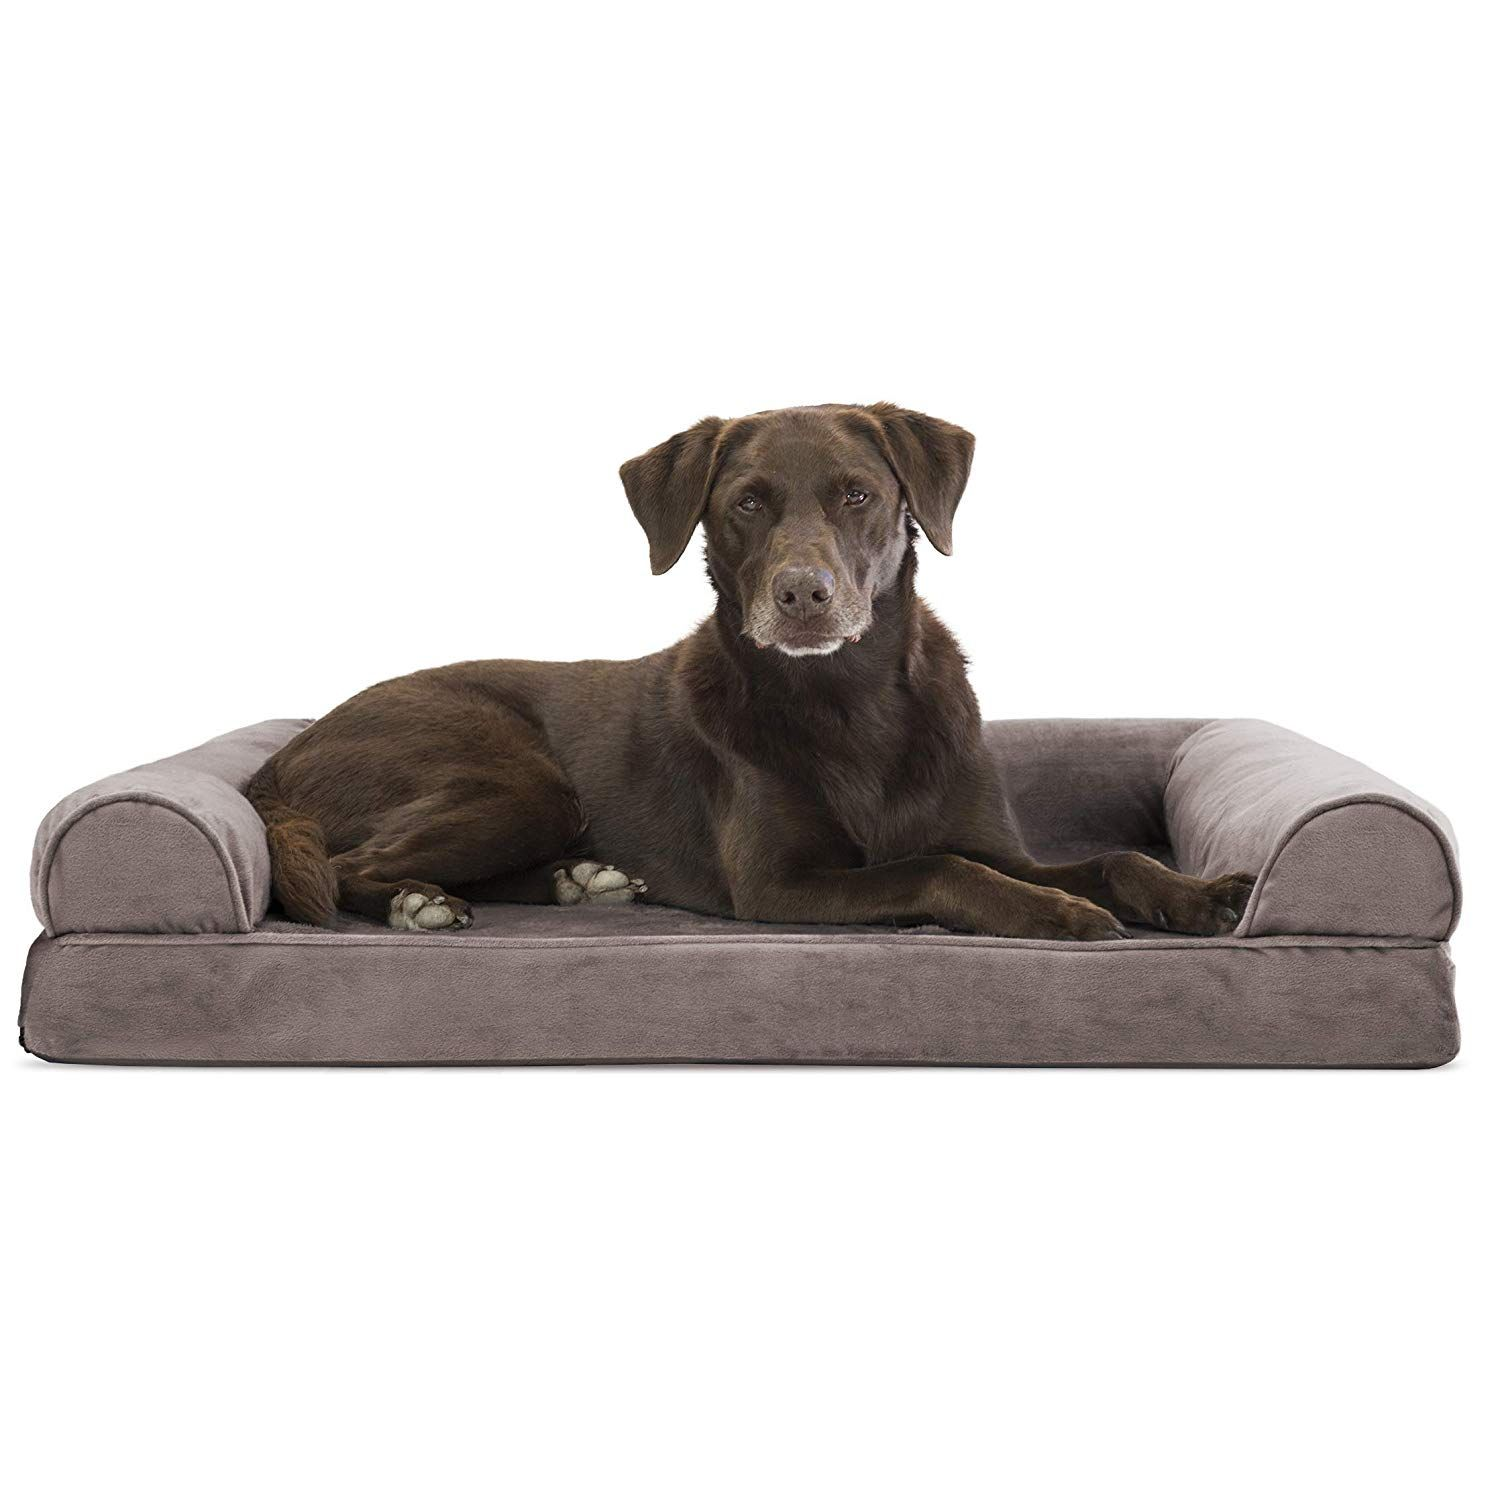 Furhaven Pet Dog Bed Orthopedic Faux Fur Velvet Traditional Sofa Style Living Room Couch Pet Be Dog Pet Beds Orthopedic Dog Bed Dog Couch Bed